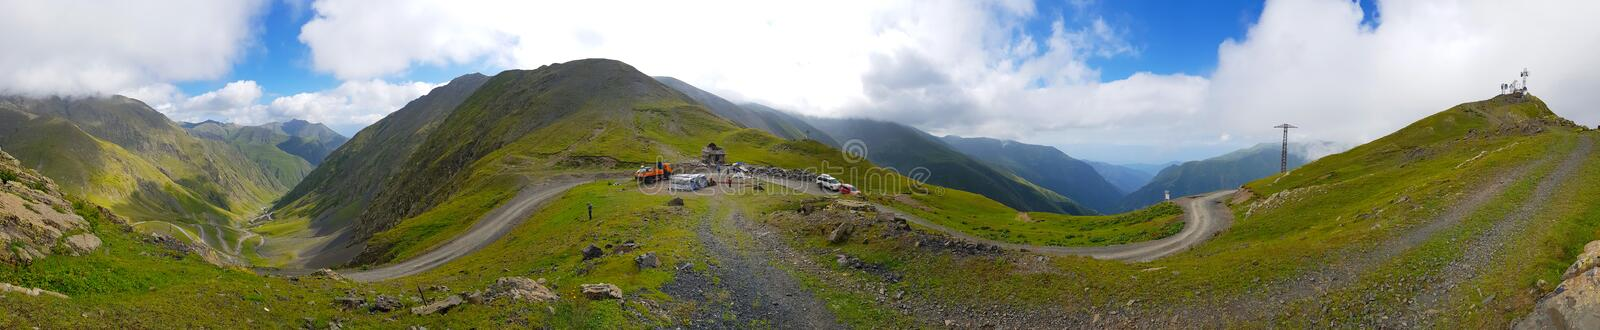 Abano Pass, a mountain pass located at 2880 metres, Georgia. Abano Pass is a mountain pass located at 2880 metres in Tusheti, Georgia. It is located in the royalty free stock image